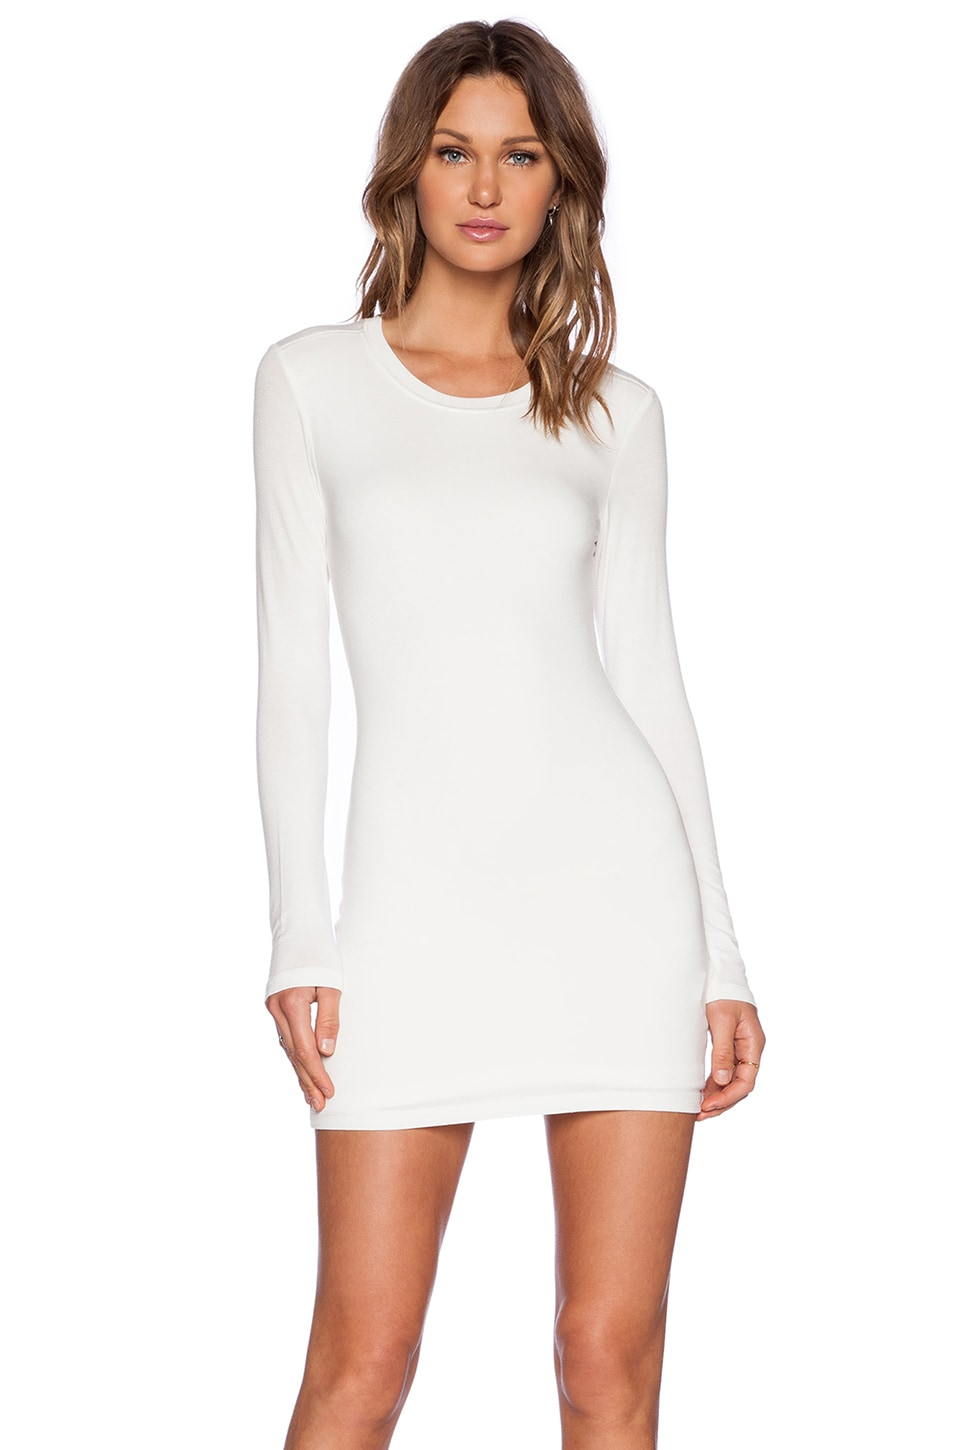 BLQ BASIQ Longsleeve Mini Dress in White | REVOLVE